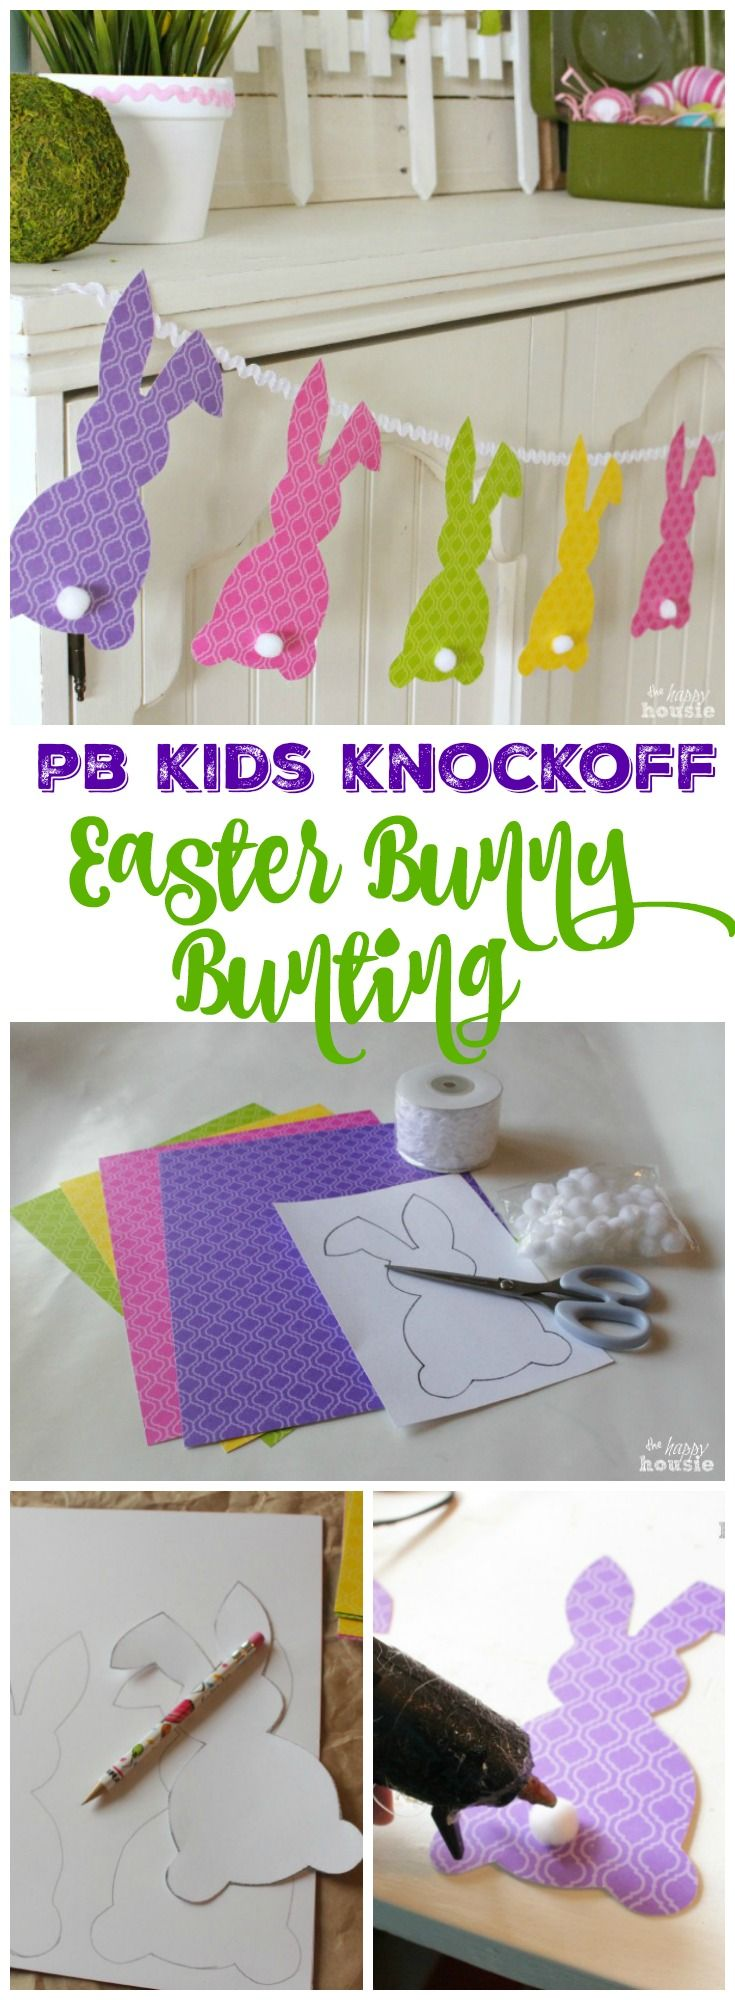 Make your own quick easy and adorable PB Kids Knockoff Easter Bunny Bunting tutorial at the happy housie